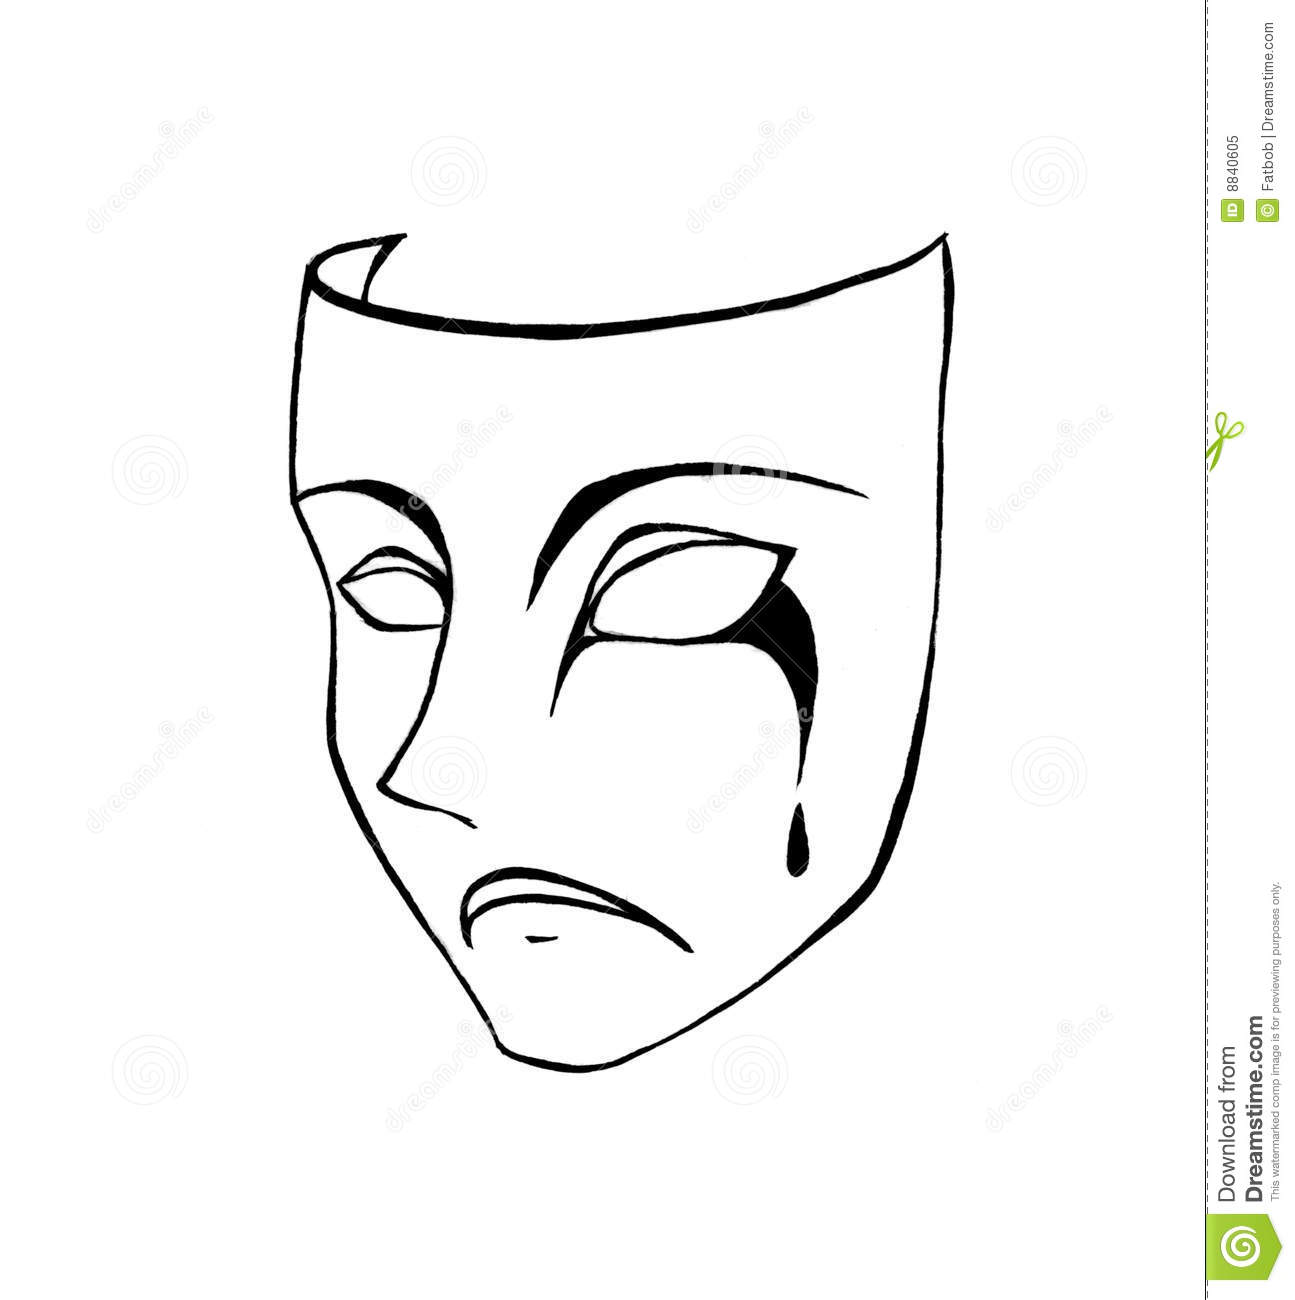 black and white pencil sketch of a sorrowful face mask with tears.